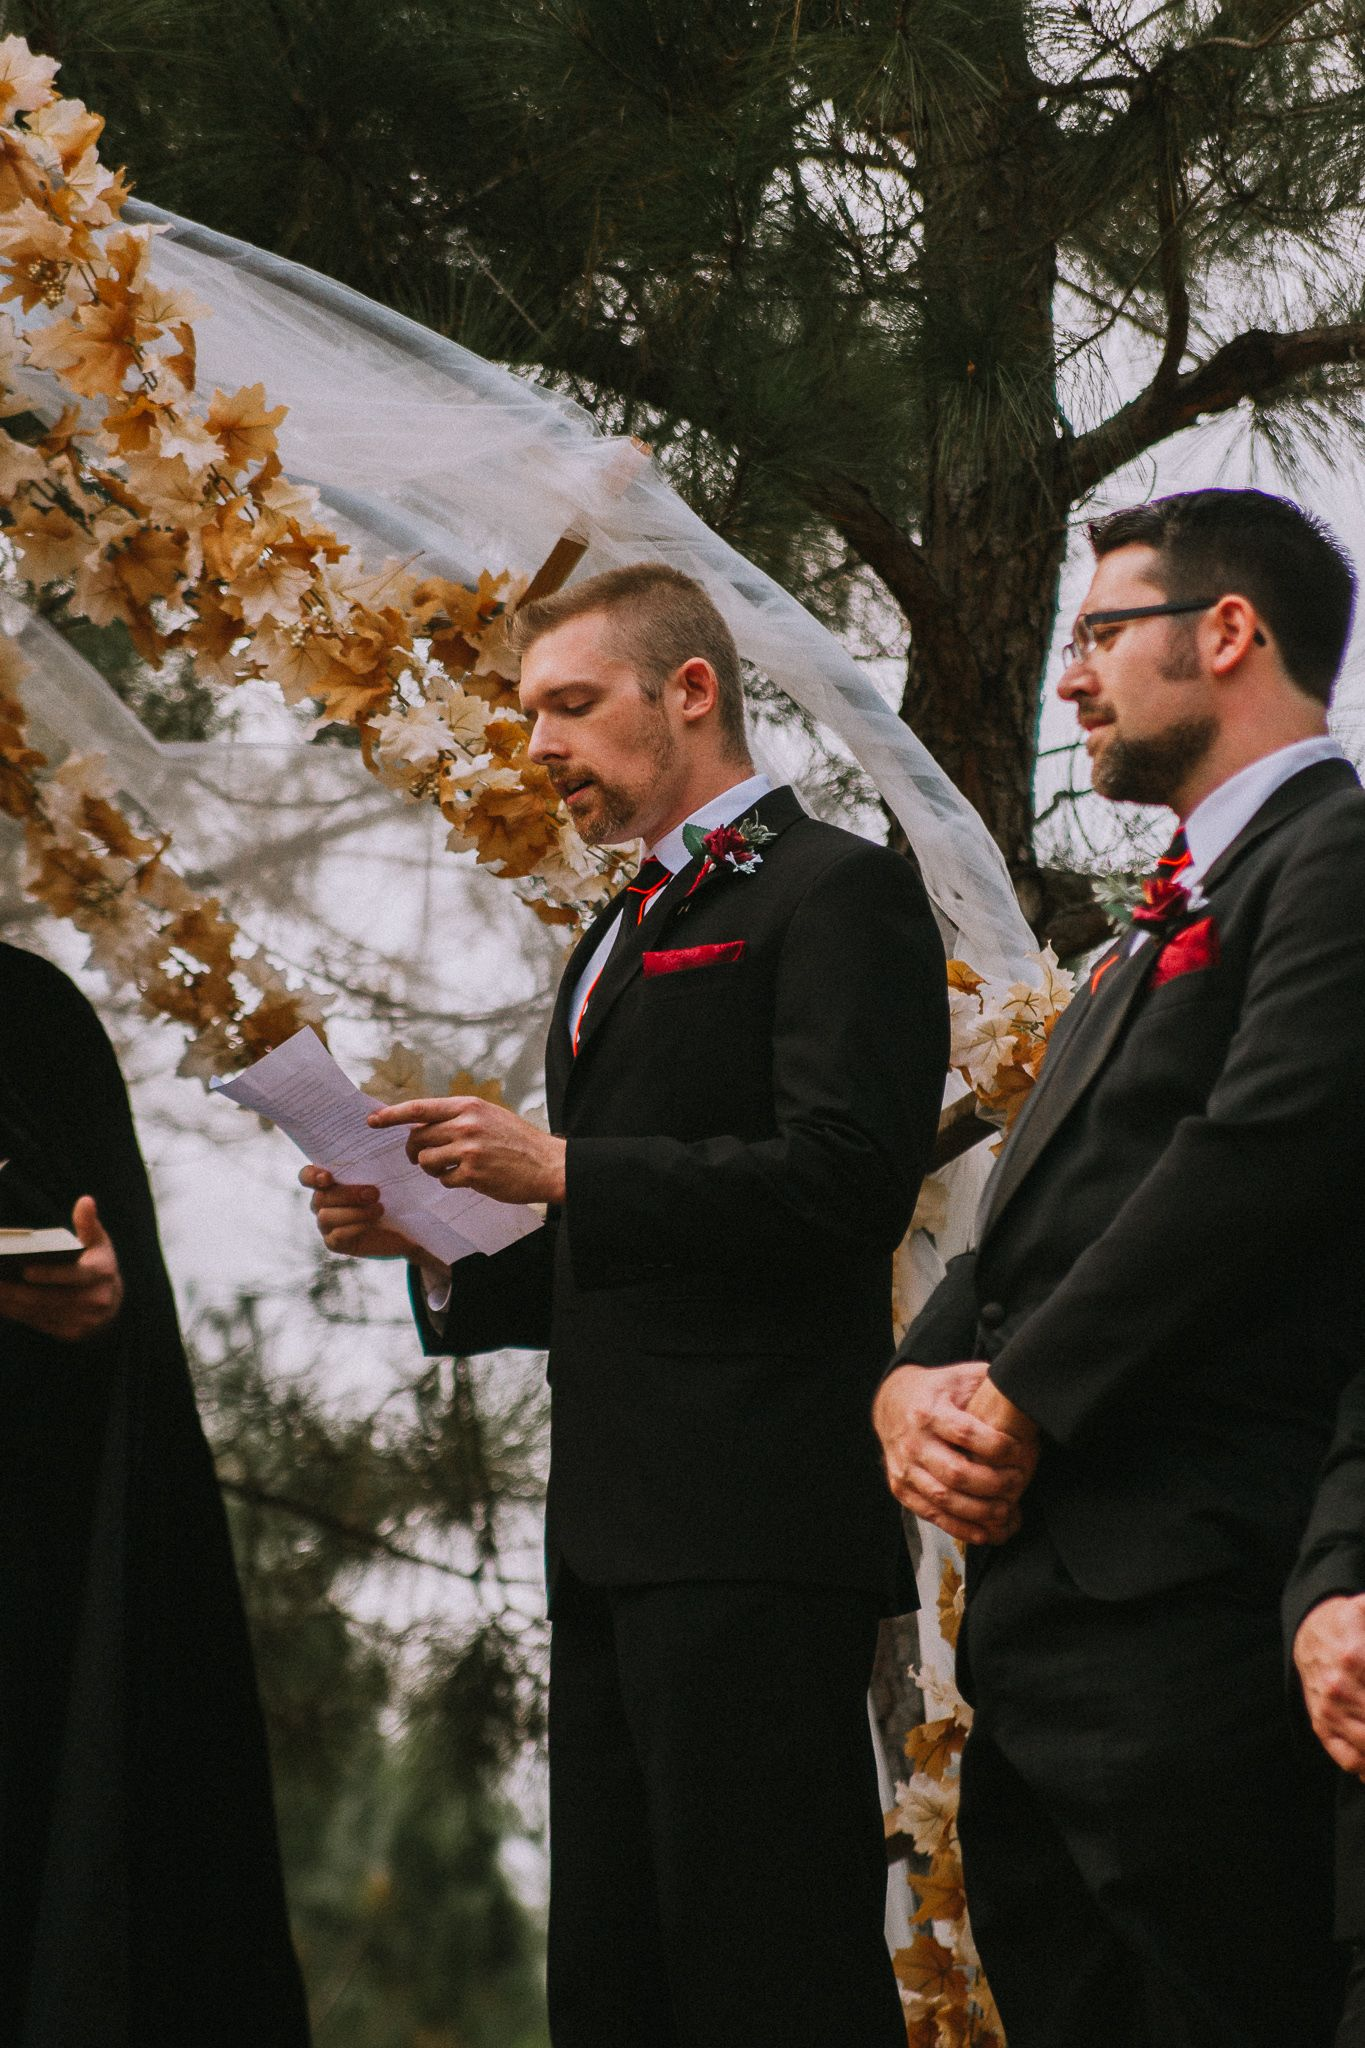 groom saying vows in front of friends and family